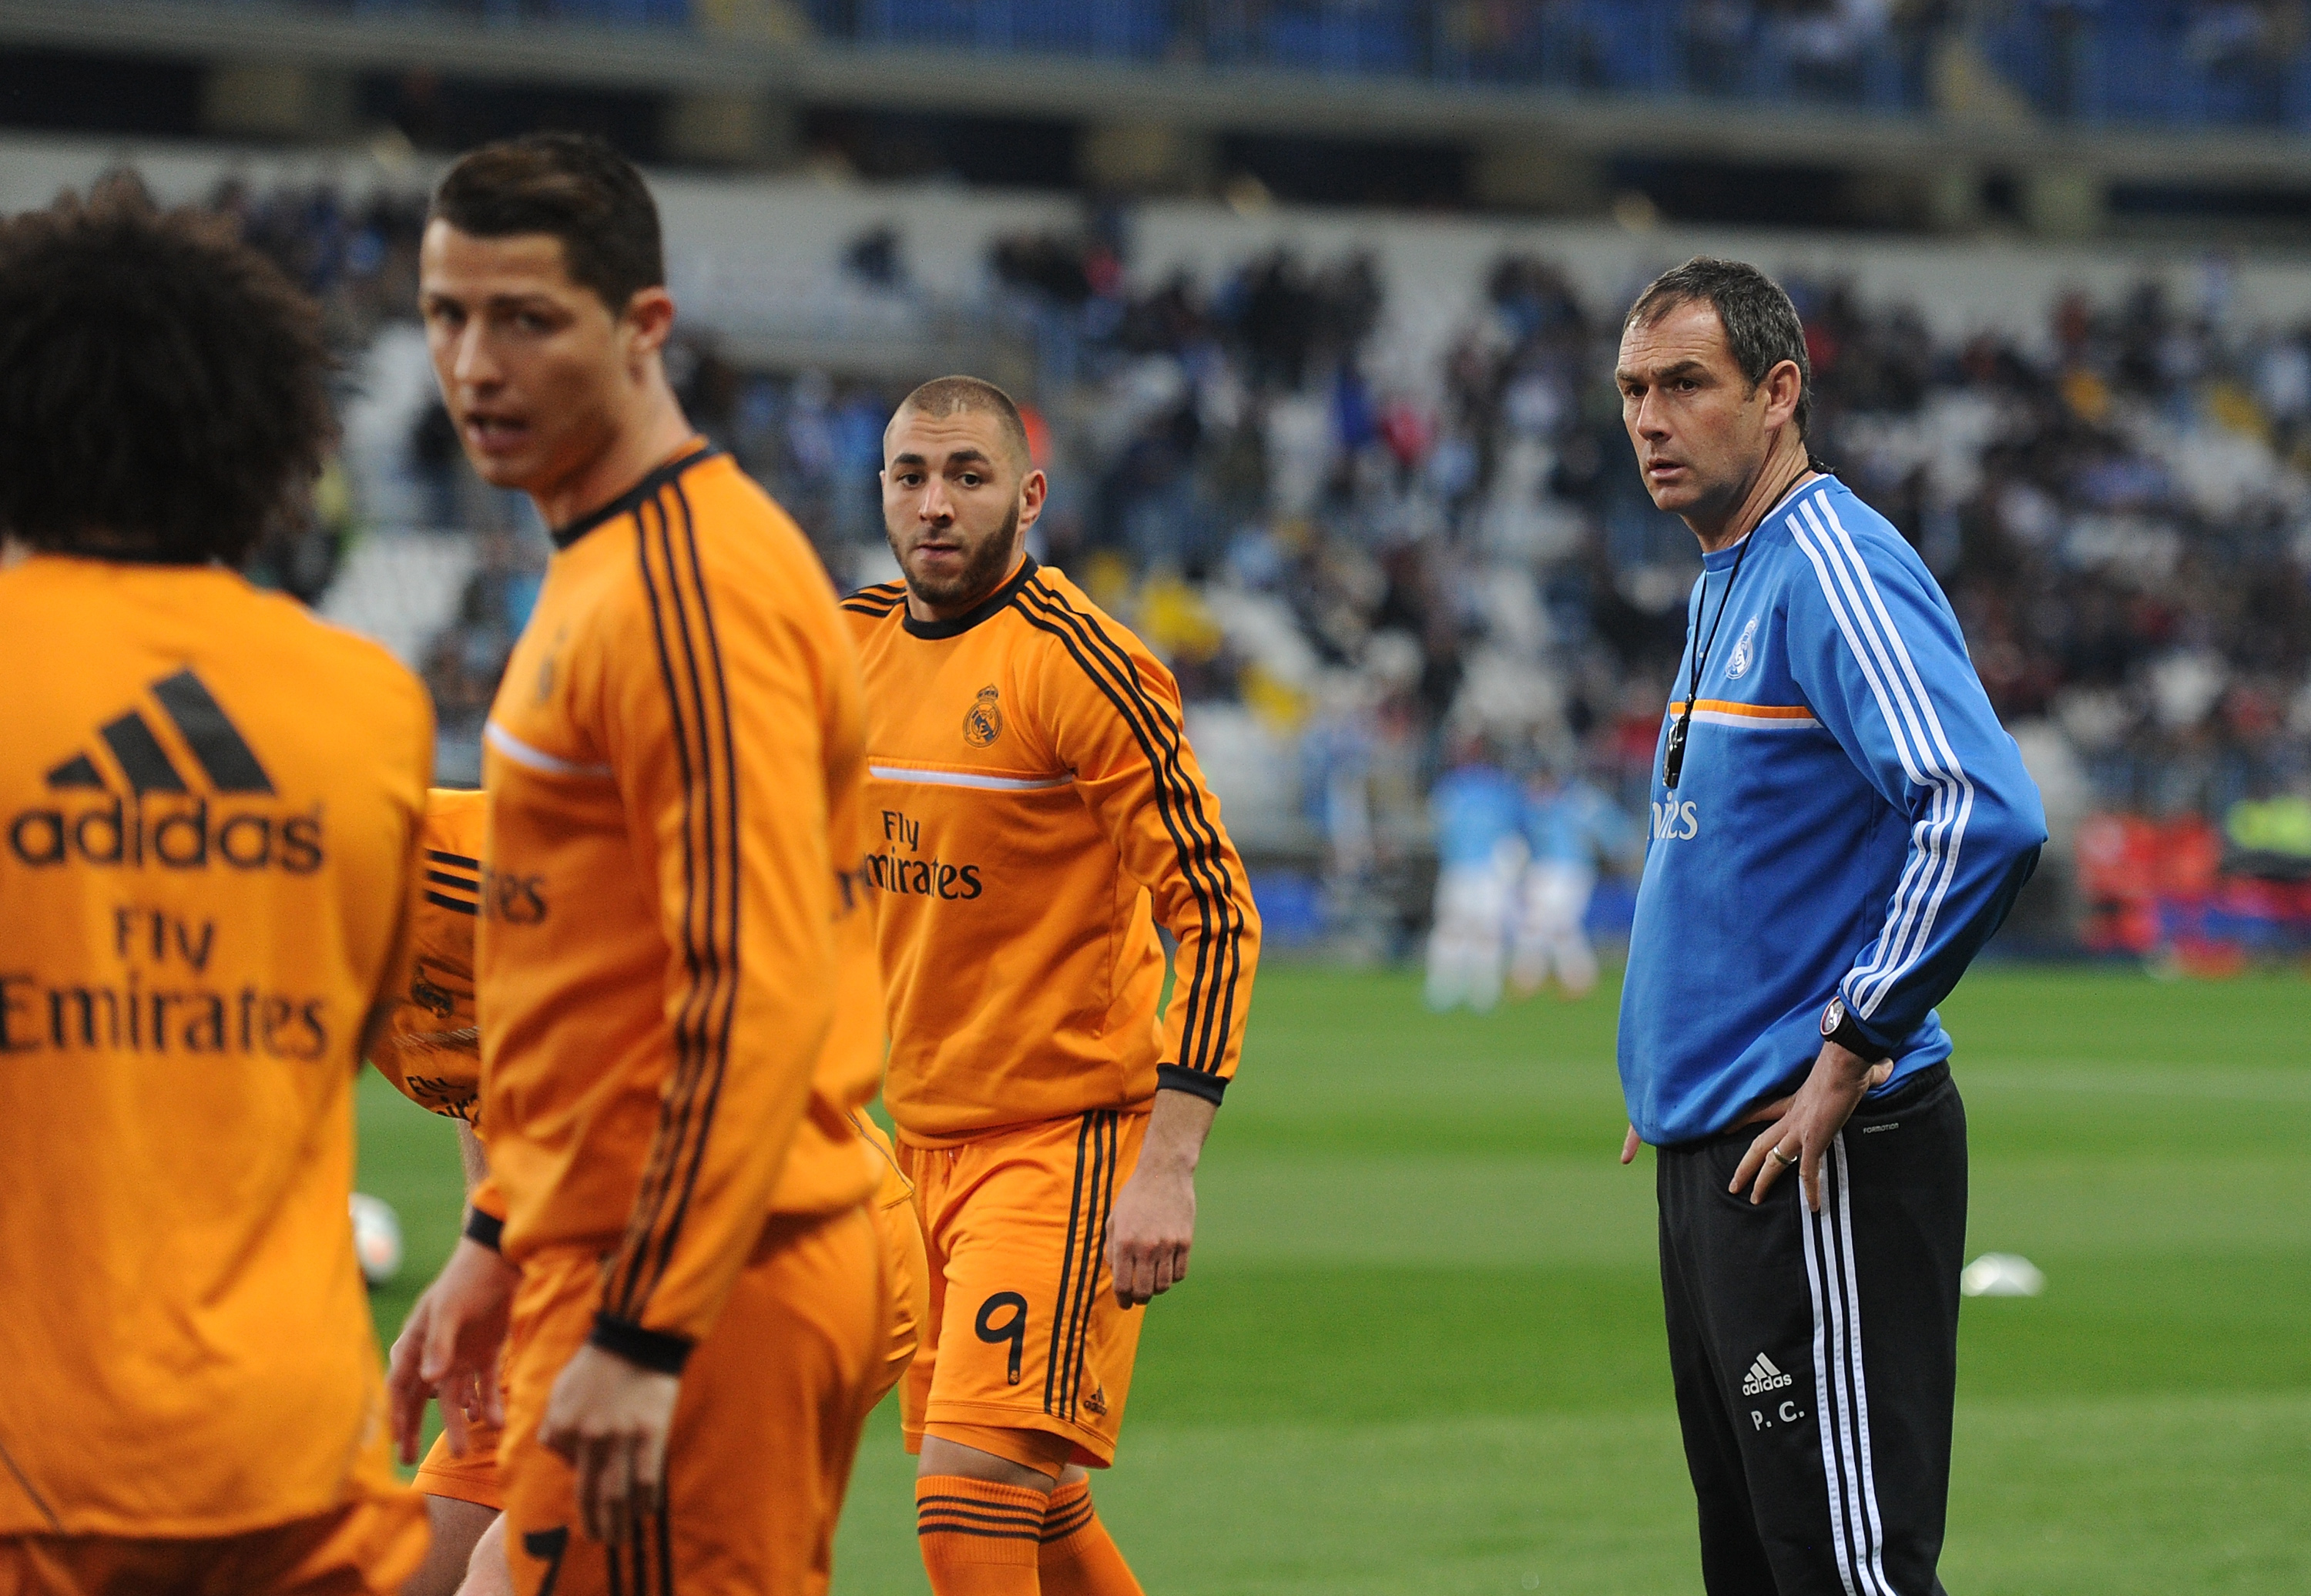 Paul Clement, Cristiano Ronaldo and Karim Benzema with Real Madrid